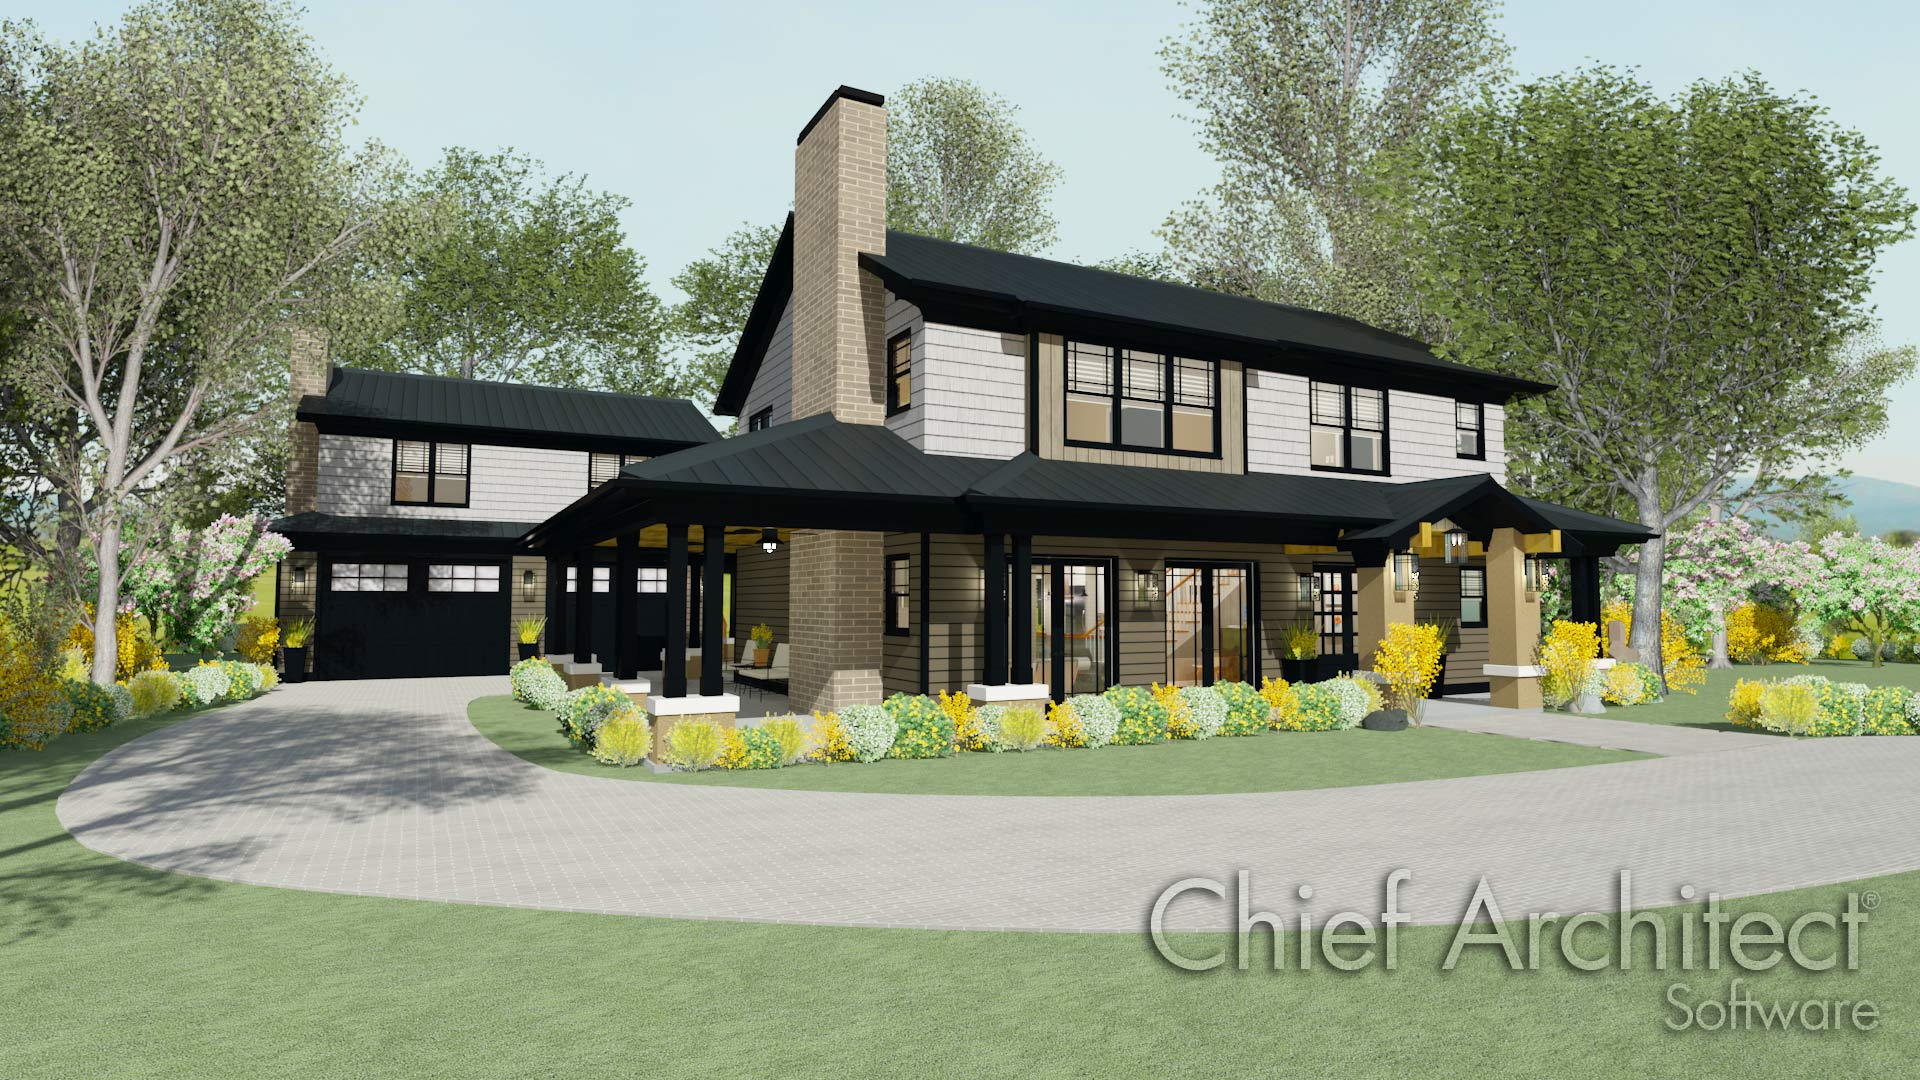 chief architect home design software samples gallery img class